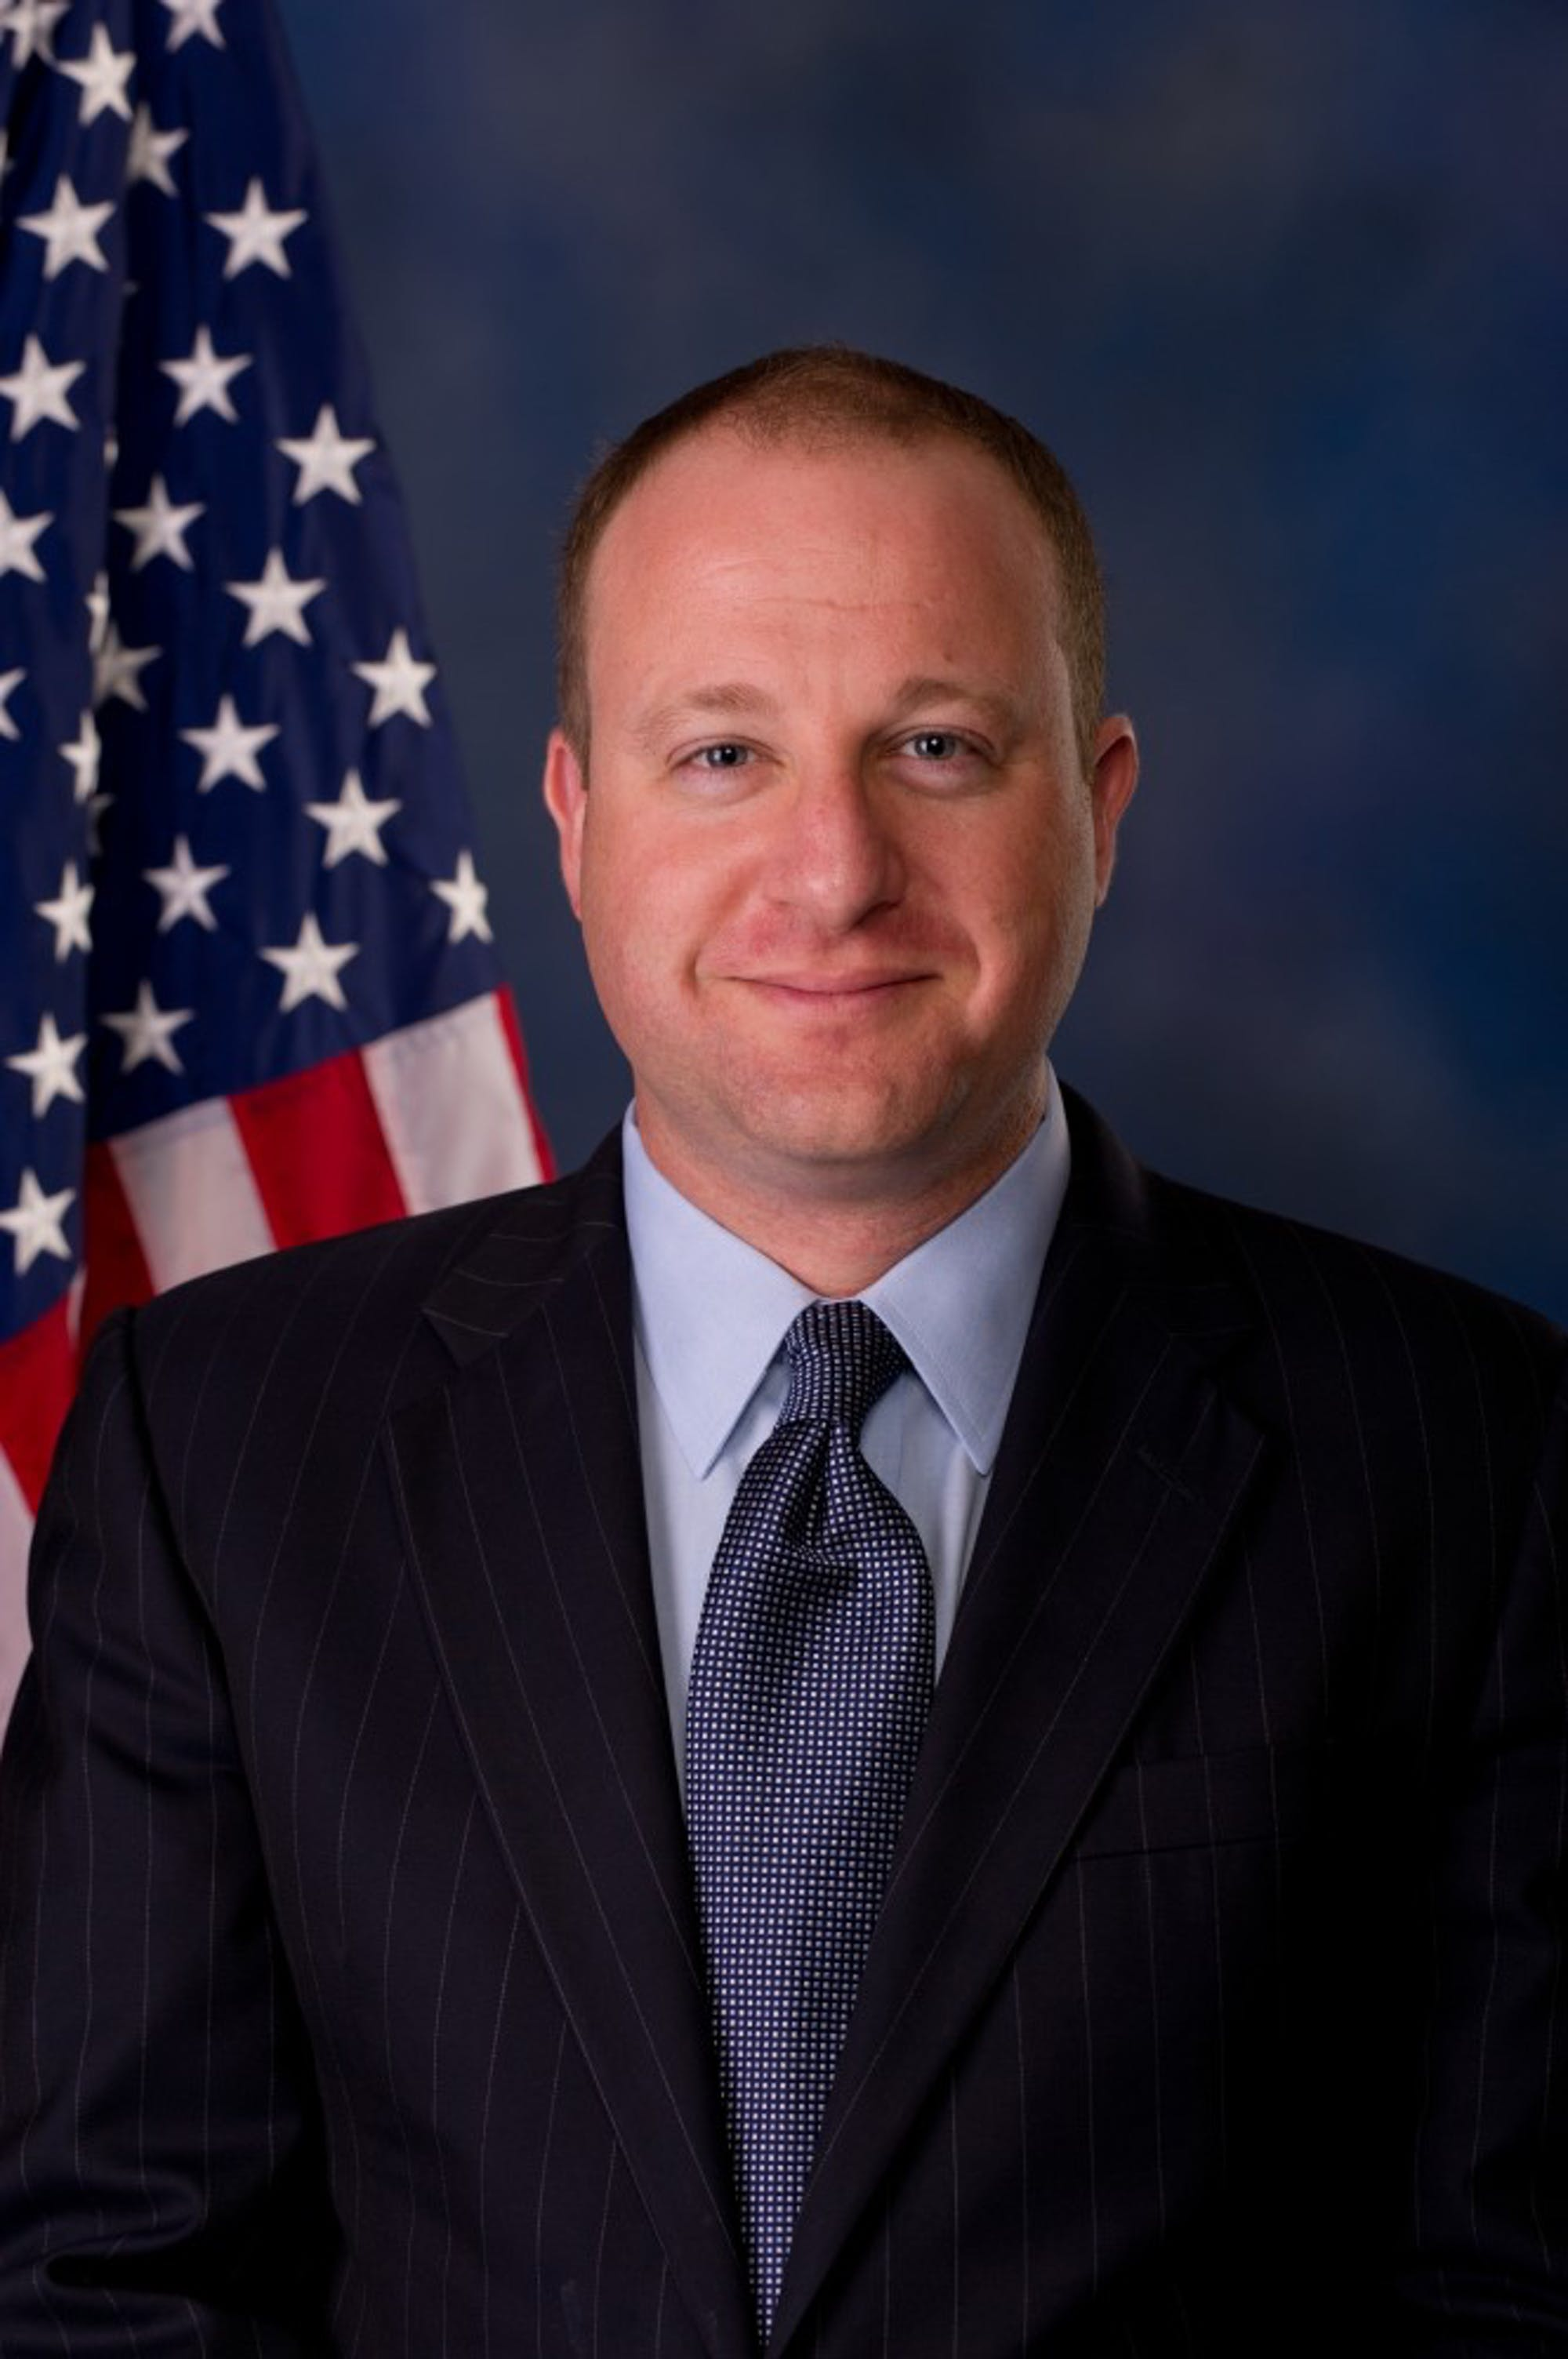 jared-polis-official-2012